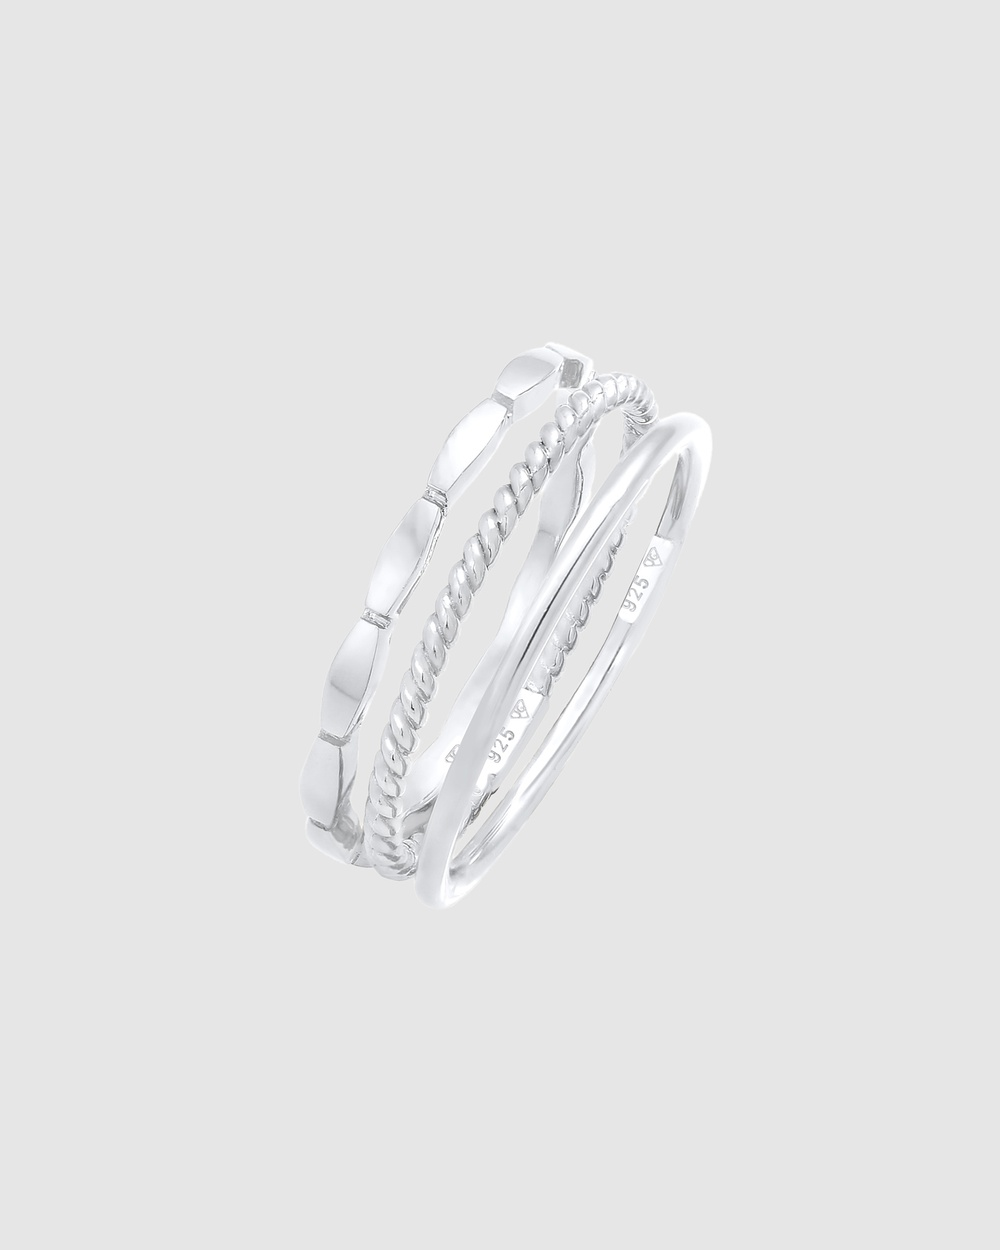 Elli Jewelry Ring Stacking Set Trio Basic Minimalist Timeless in 925 Sterling Silver Jewellery Silver